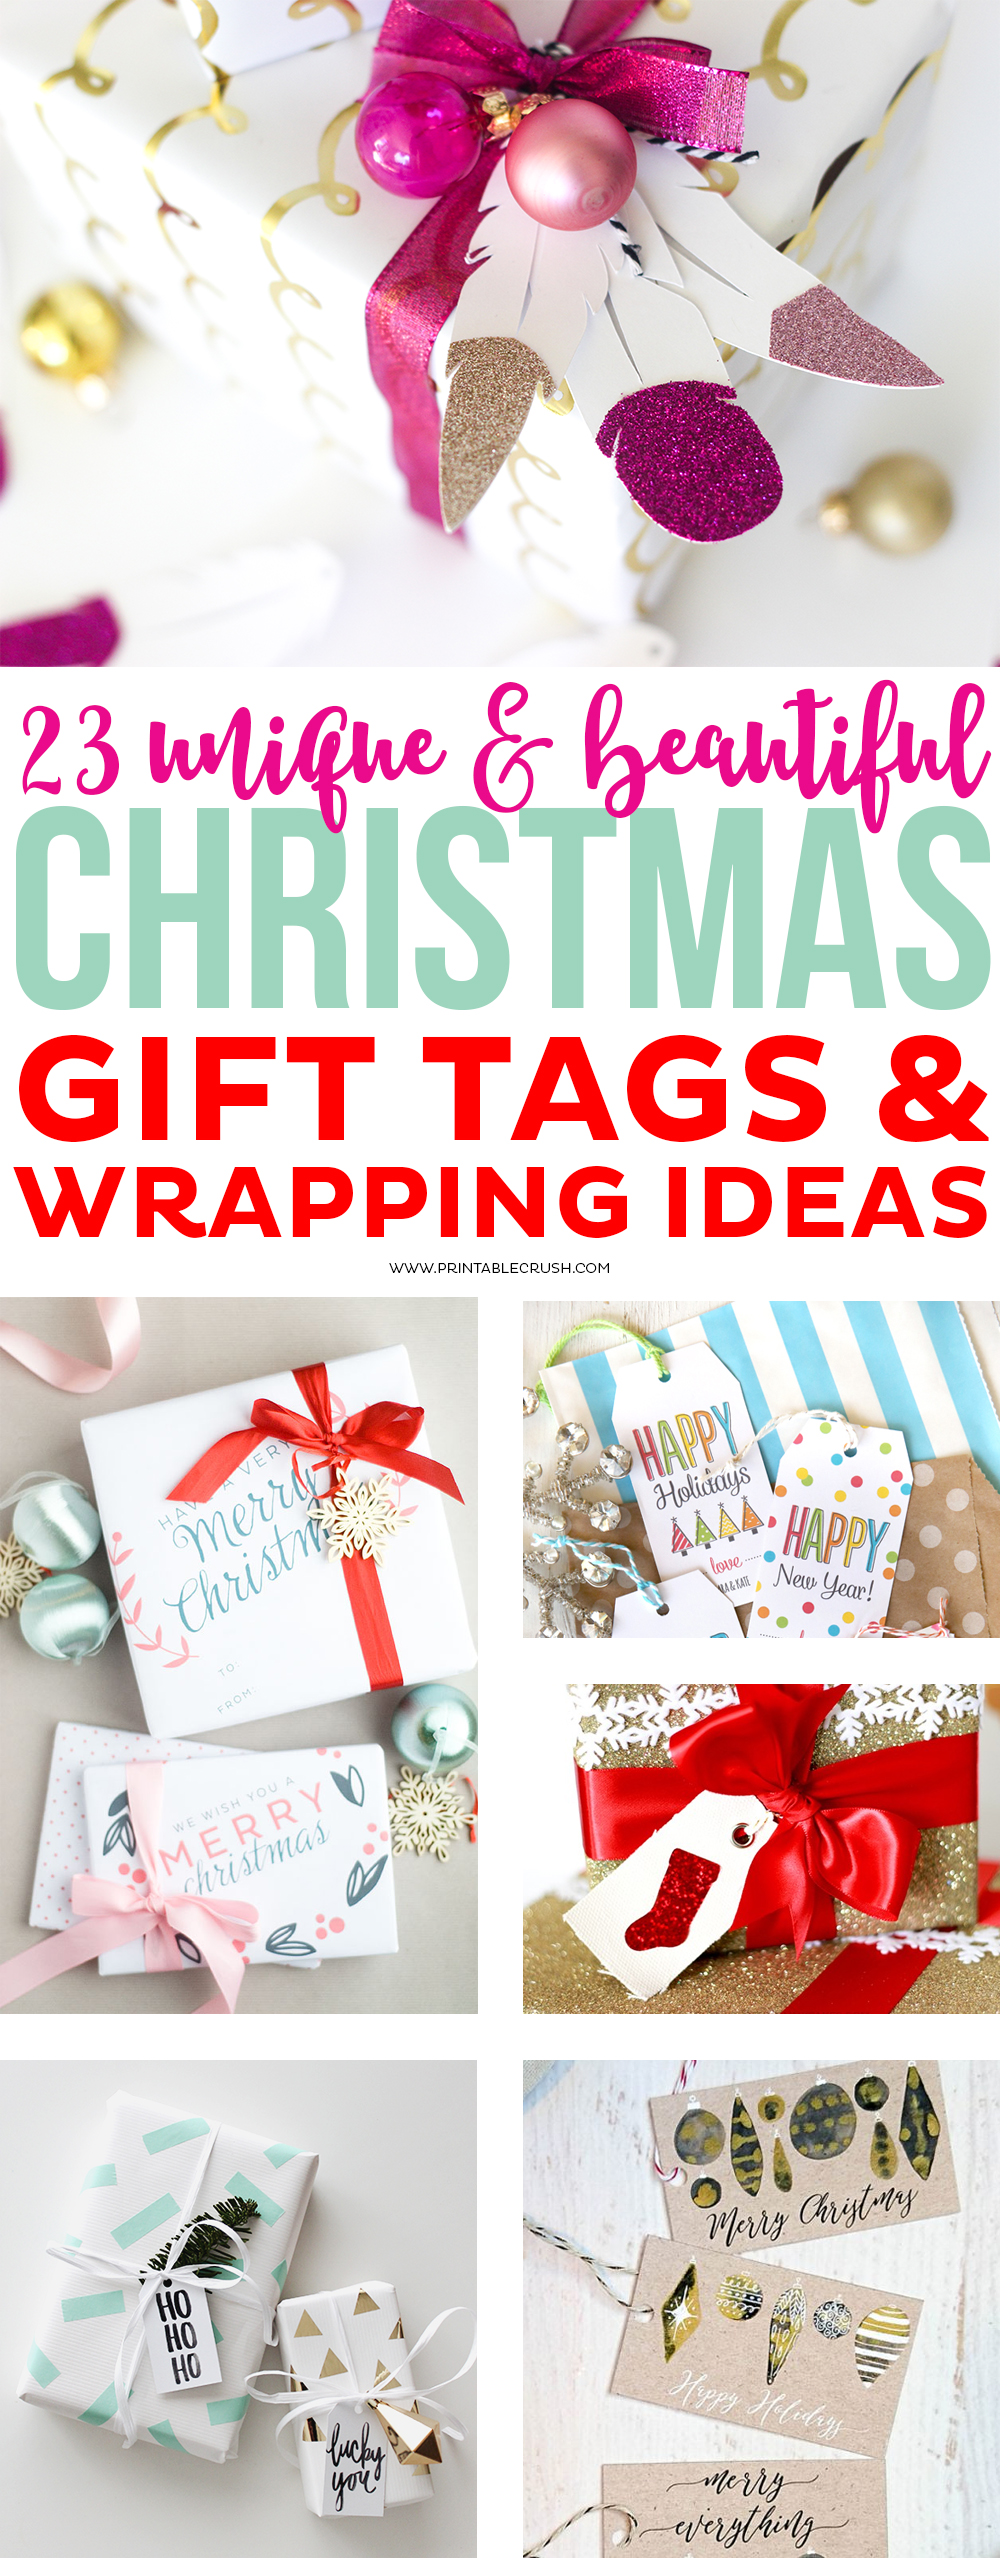 You'll love all these 23 Unique Christmas Gift Tags and Wrapping Ideas! I have included cute & free printable gift tags, printable wrapping paper, and some really fun ideas for wrapping for both kids and adults! via @printablecrush